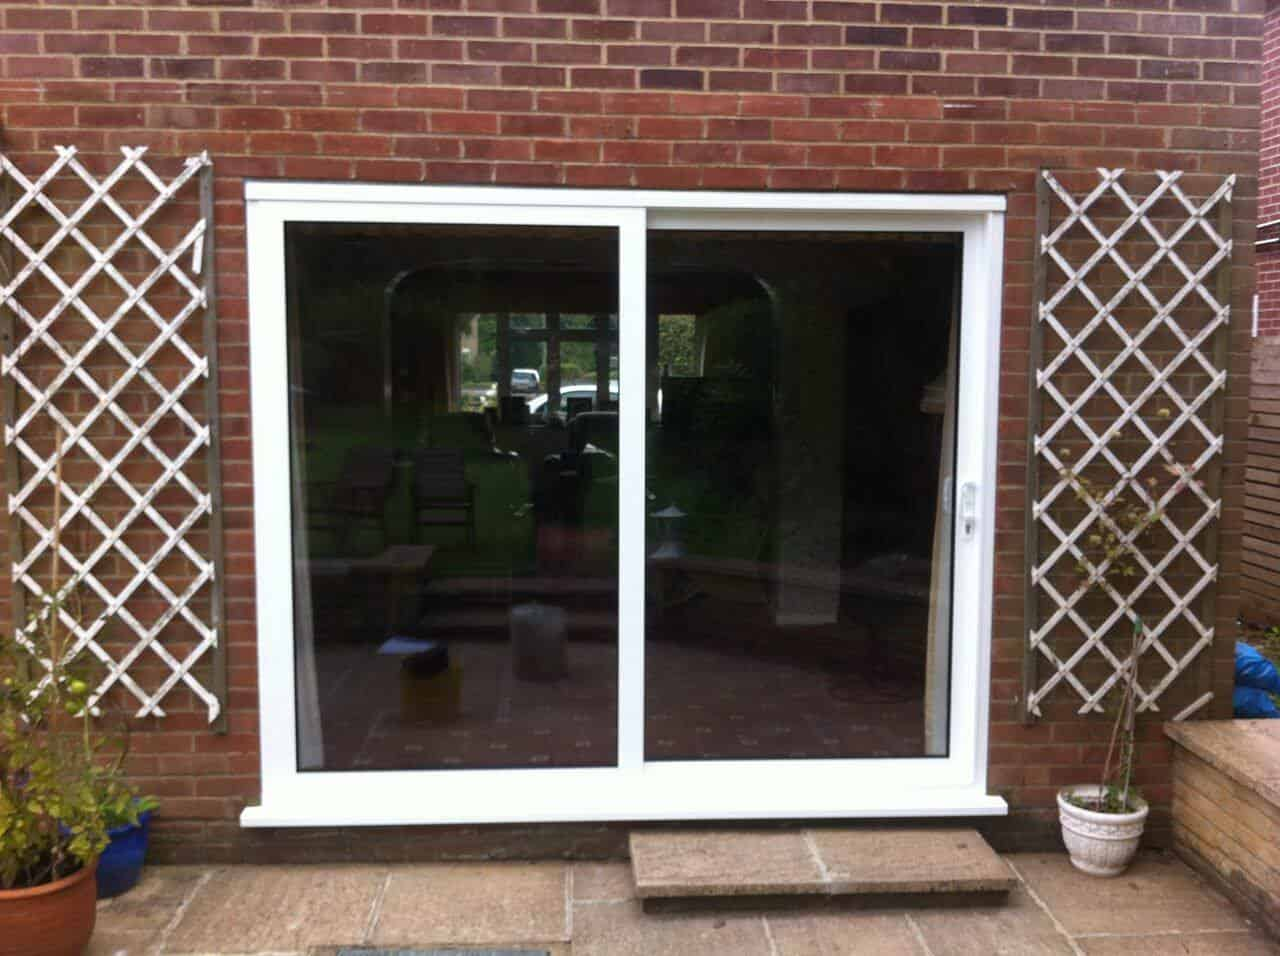 Upvc patio doors pangbourne double glazed doors reading for Double glazed upvc patio doors